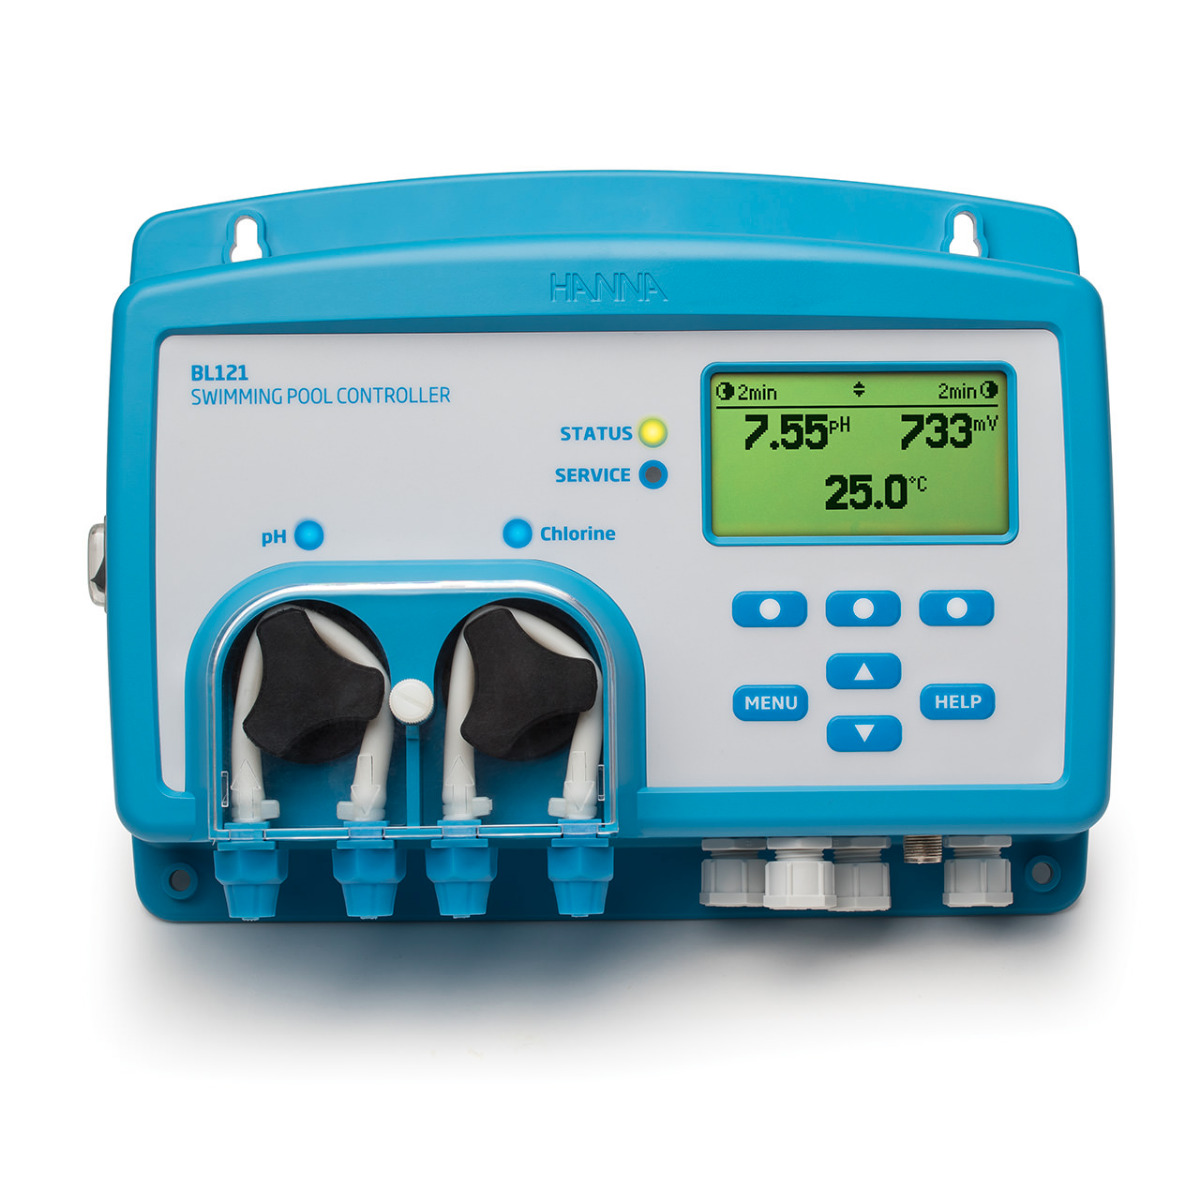 Cloud Enabled Swimming Pool Controller with Built-in Dosing Pumps